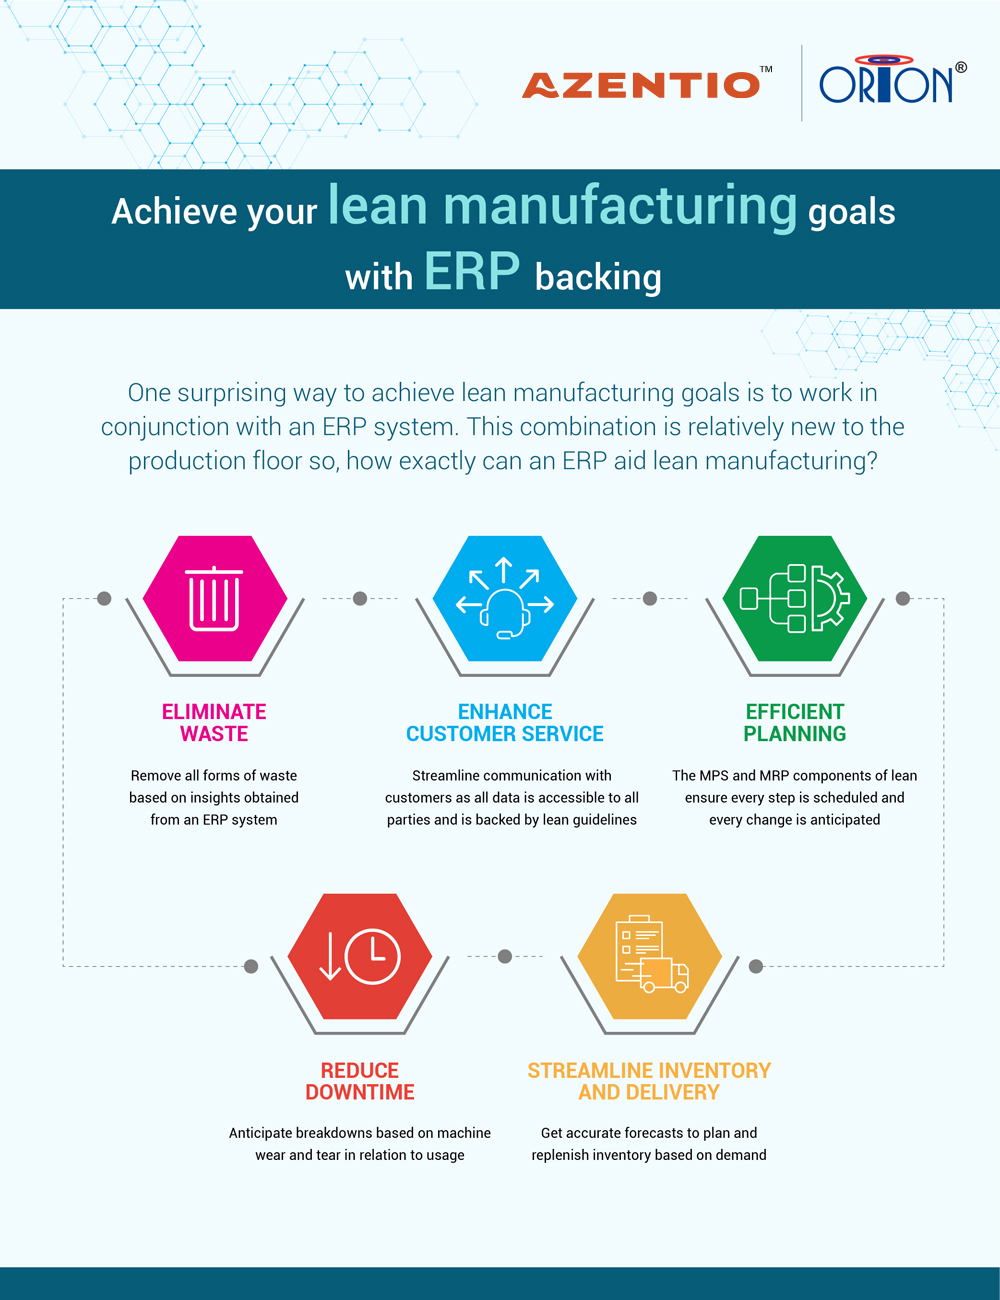 Achieve your lean manufacturing goals with ERP backing